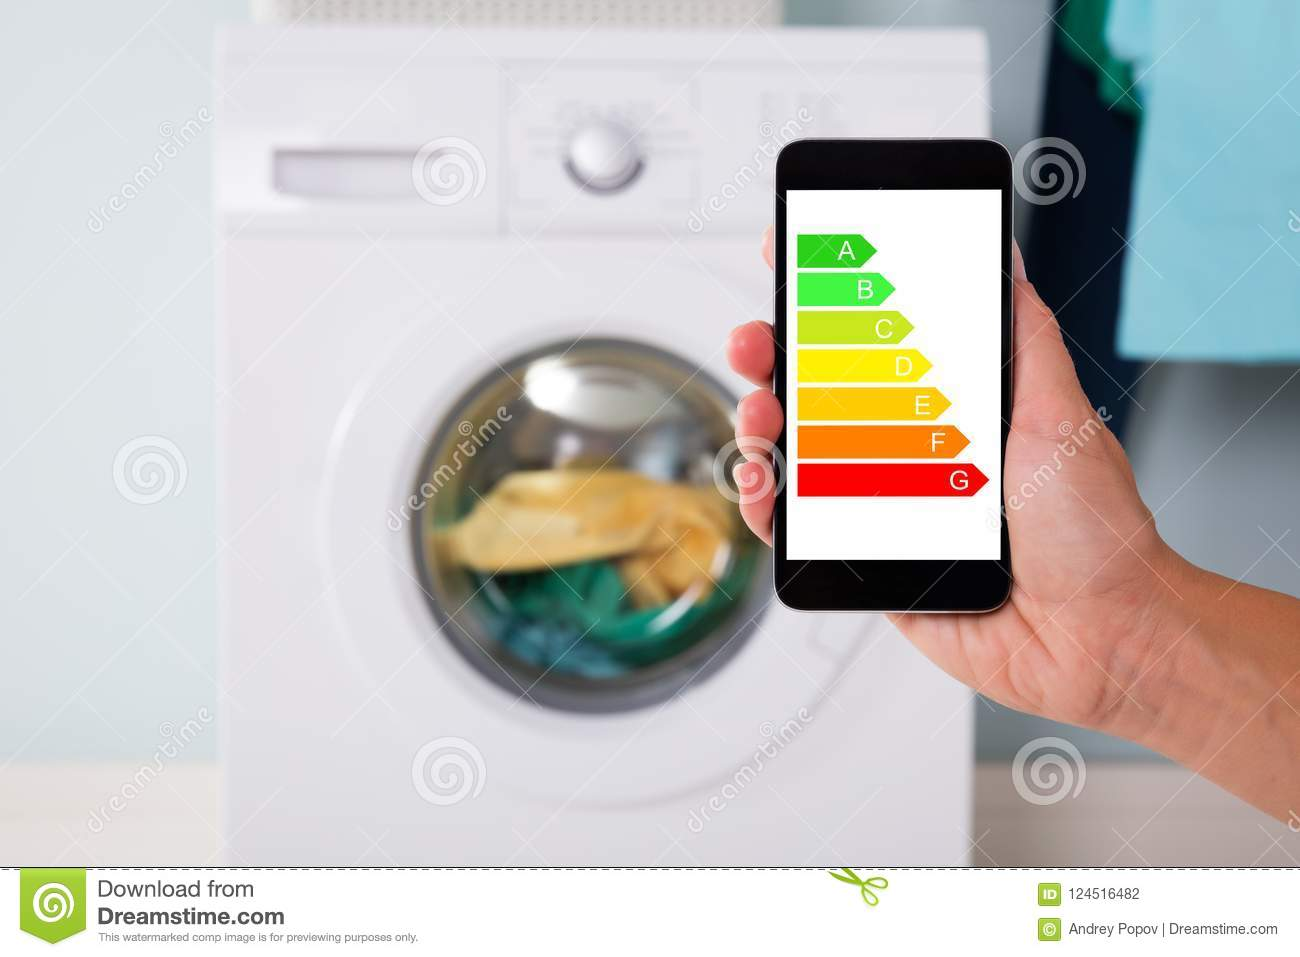 Hand Using Energy Label On Mobile Phone Against Washing